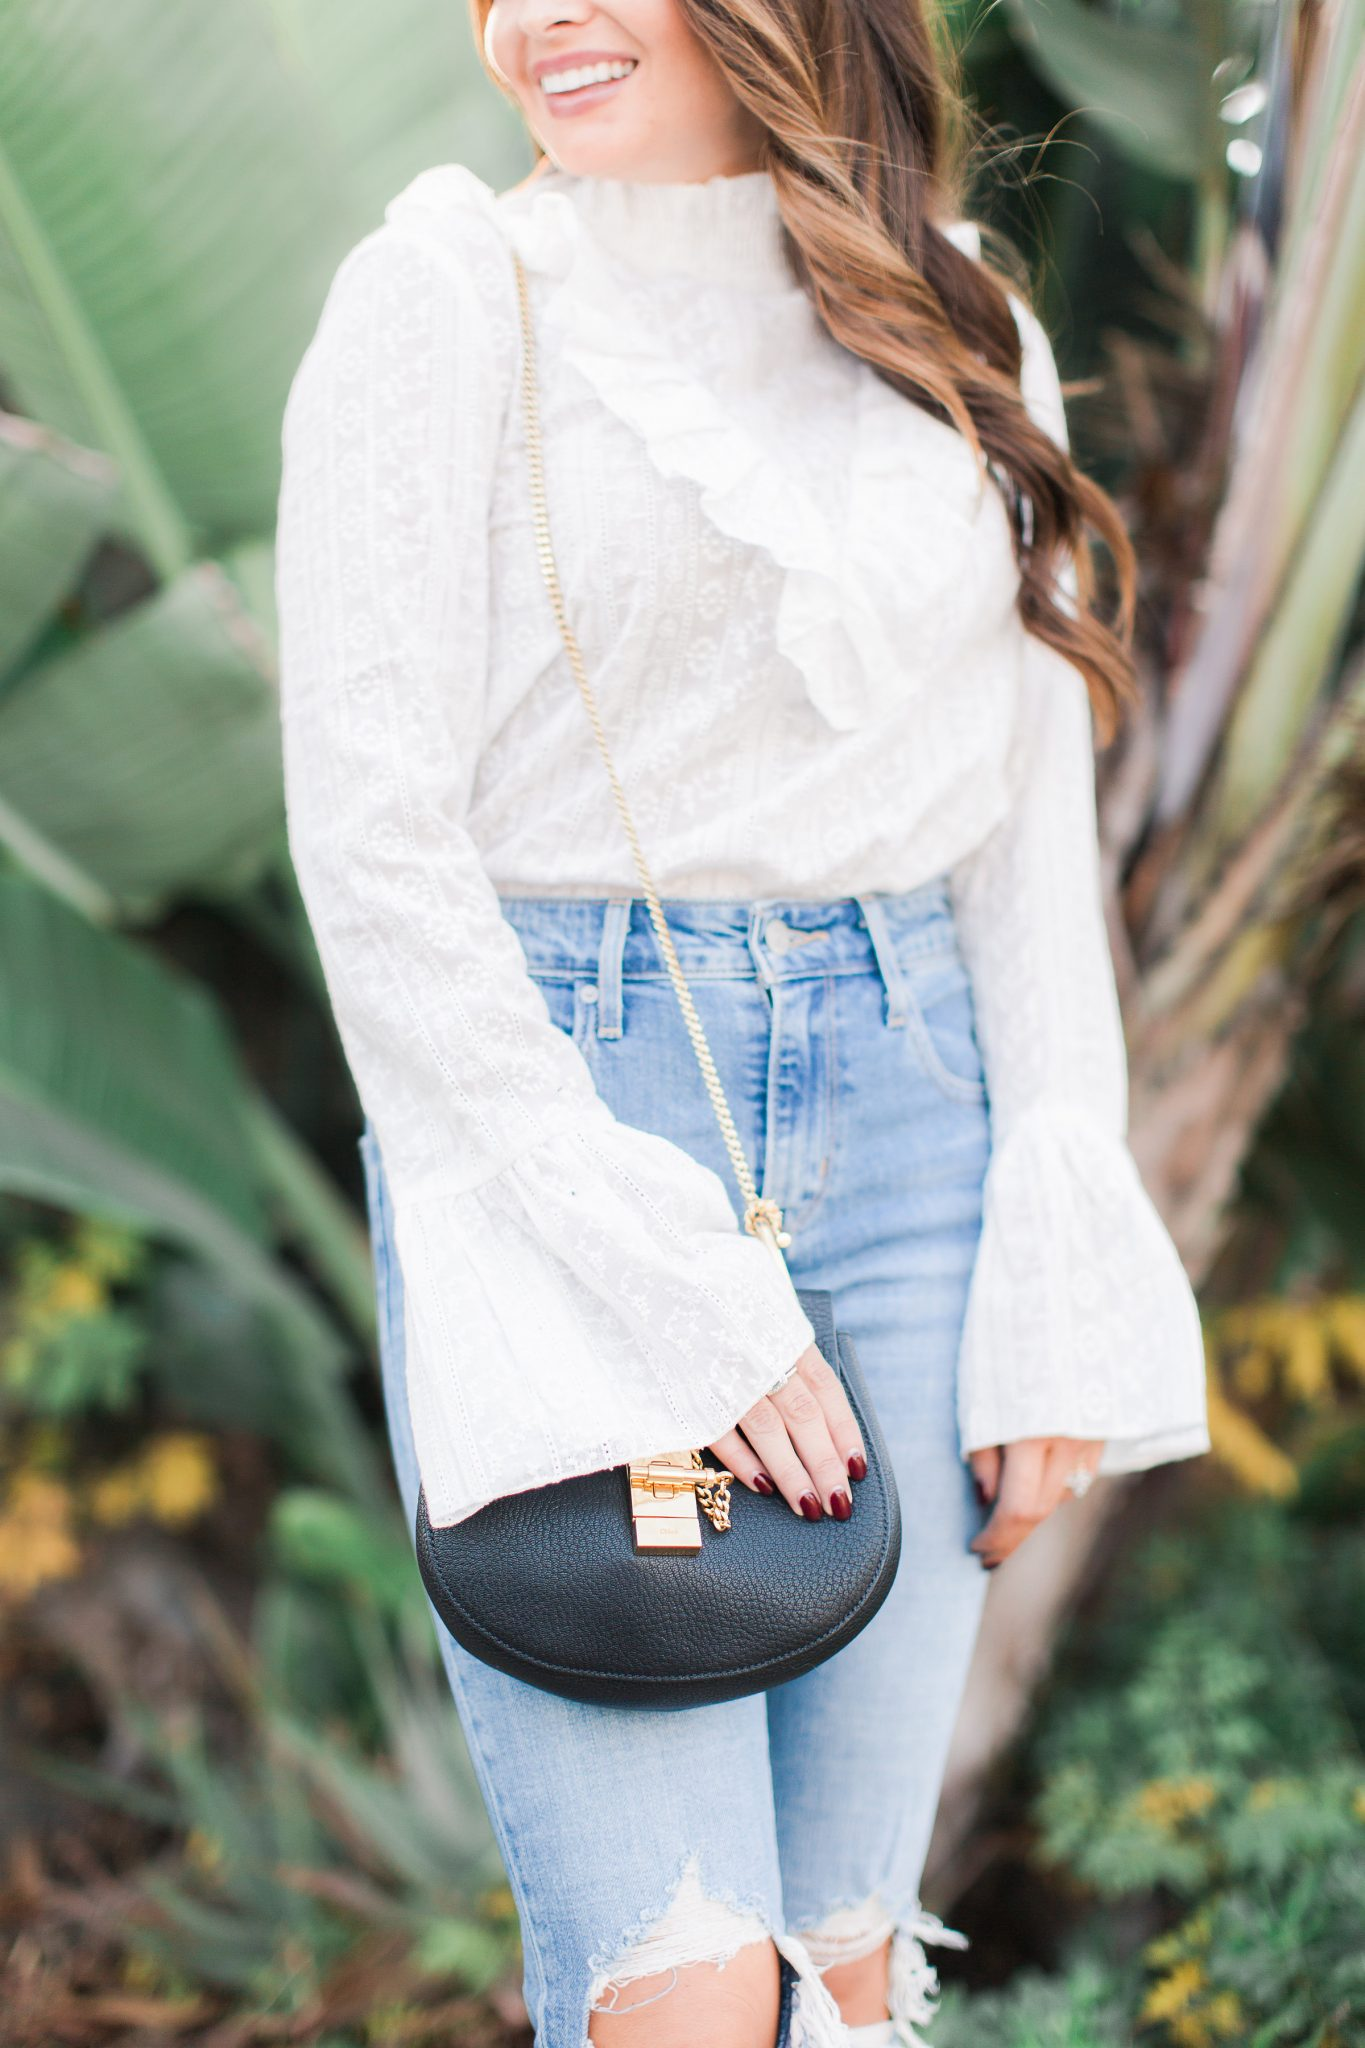 Maxie Elise | White lace top & distressed denim - New Year Resolutions by popular Orange County blogger Maxie Elise